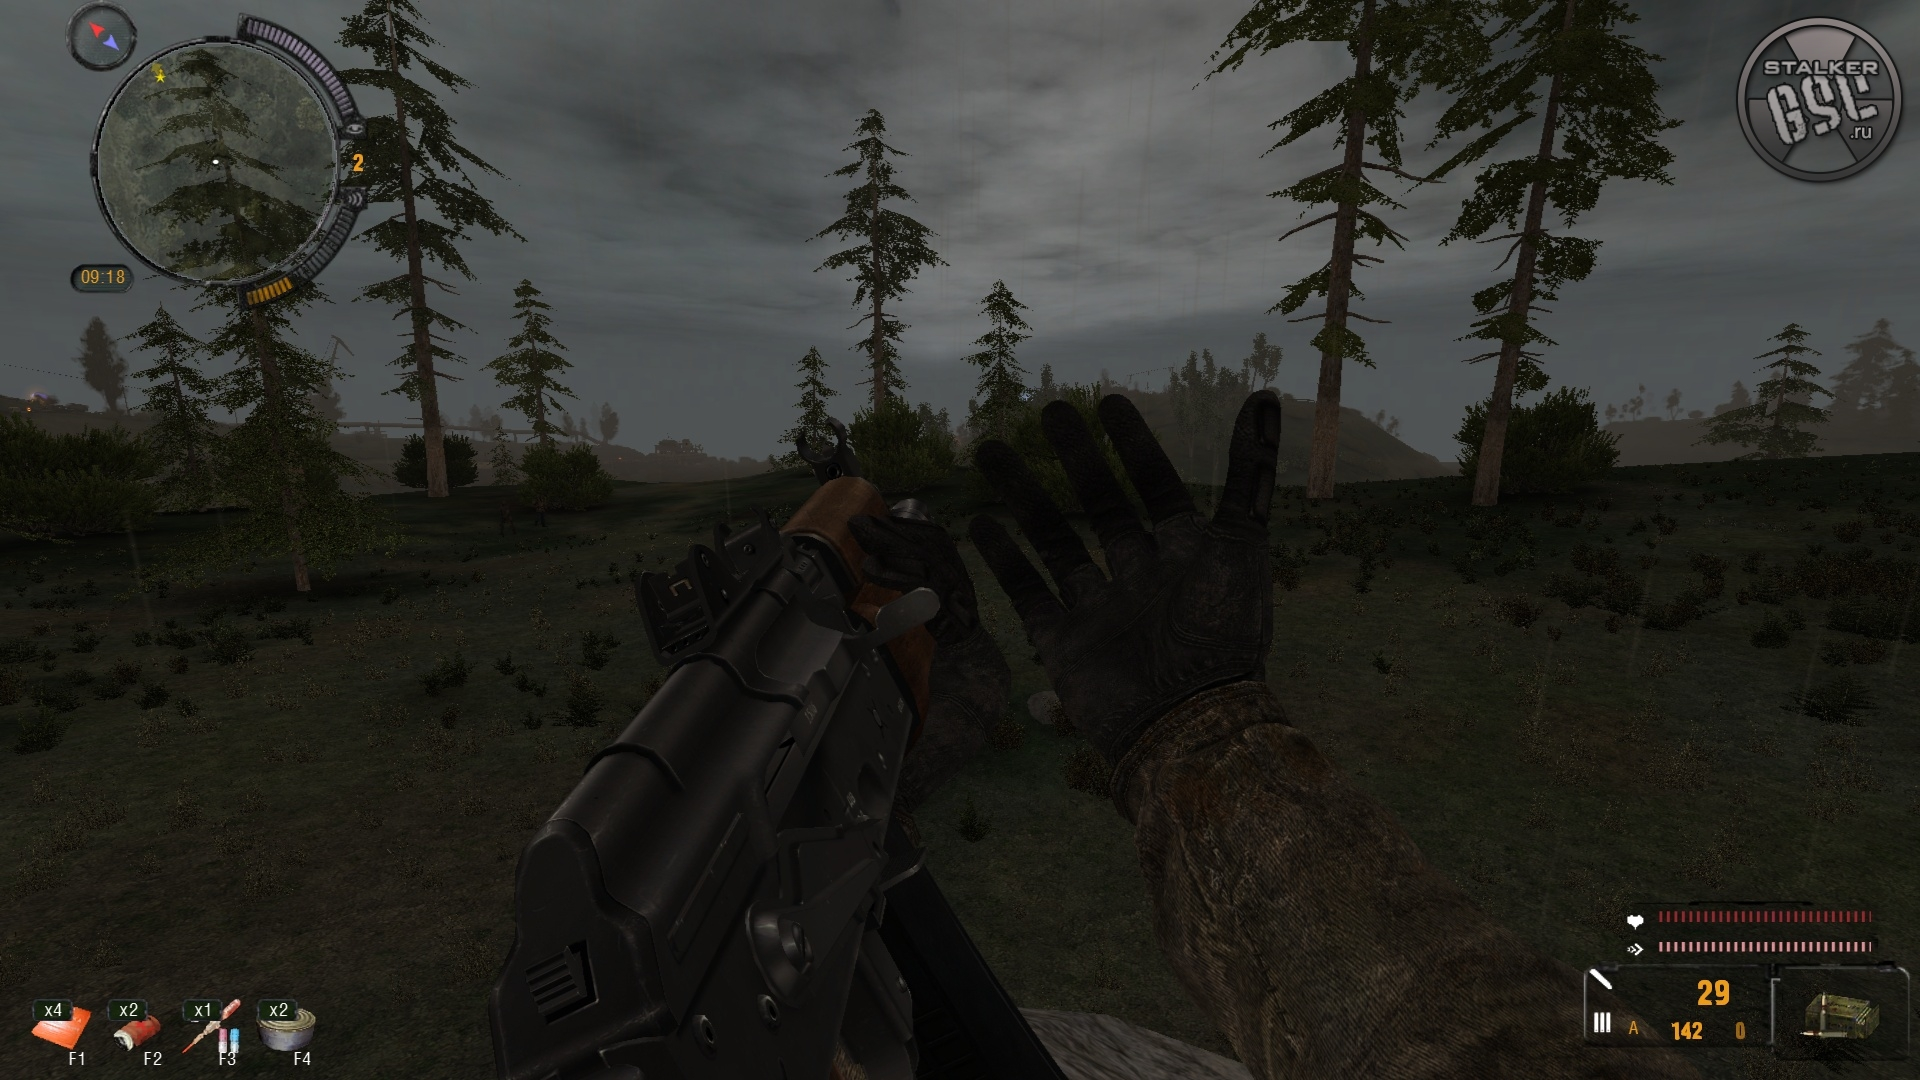 S.T.A.L.K.E.R: Call of Pripyat - Life zone